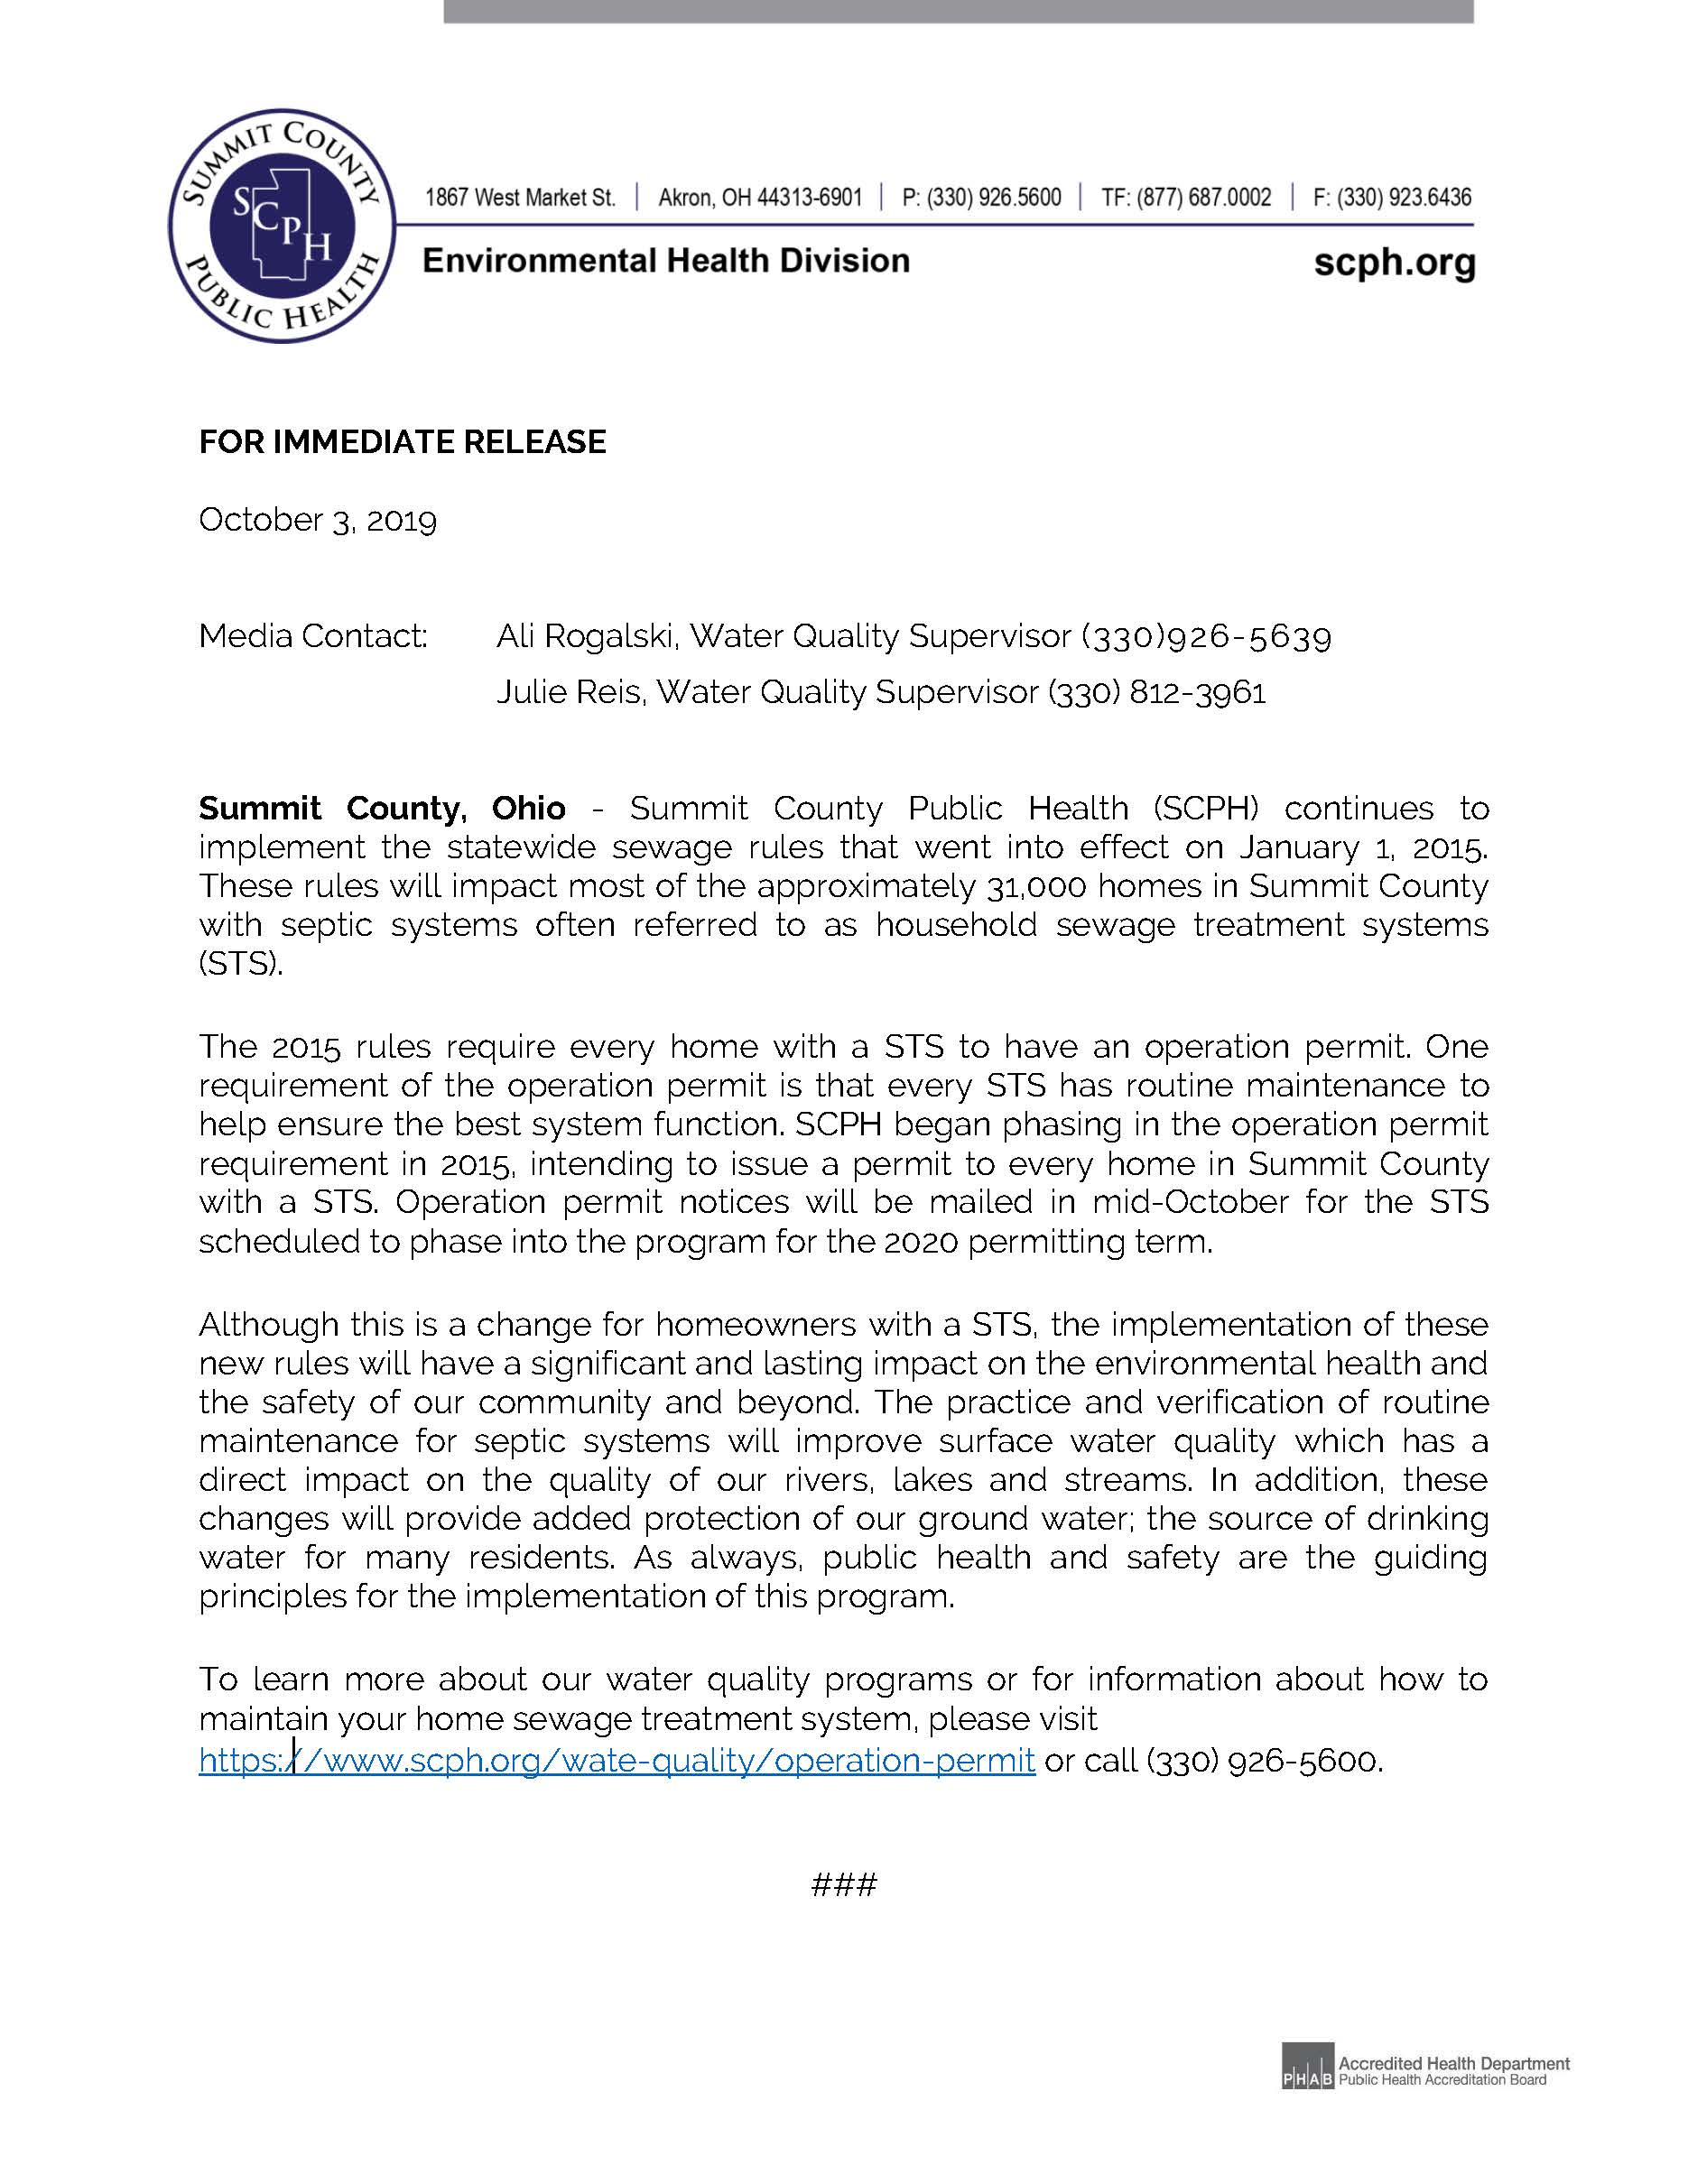 2019 Operation Permit Press Release